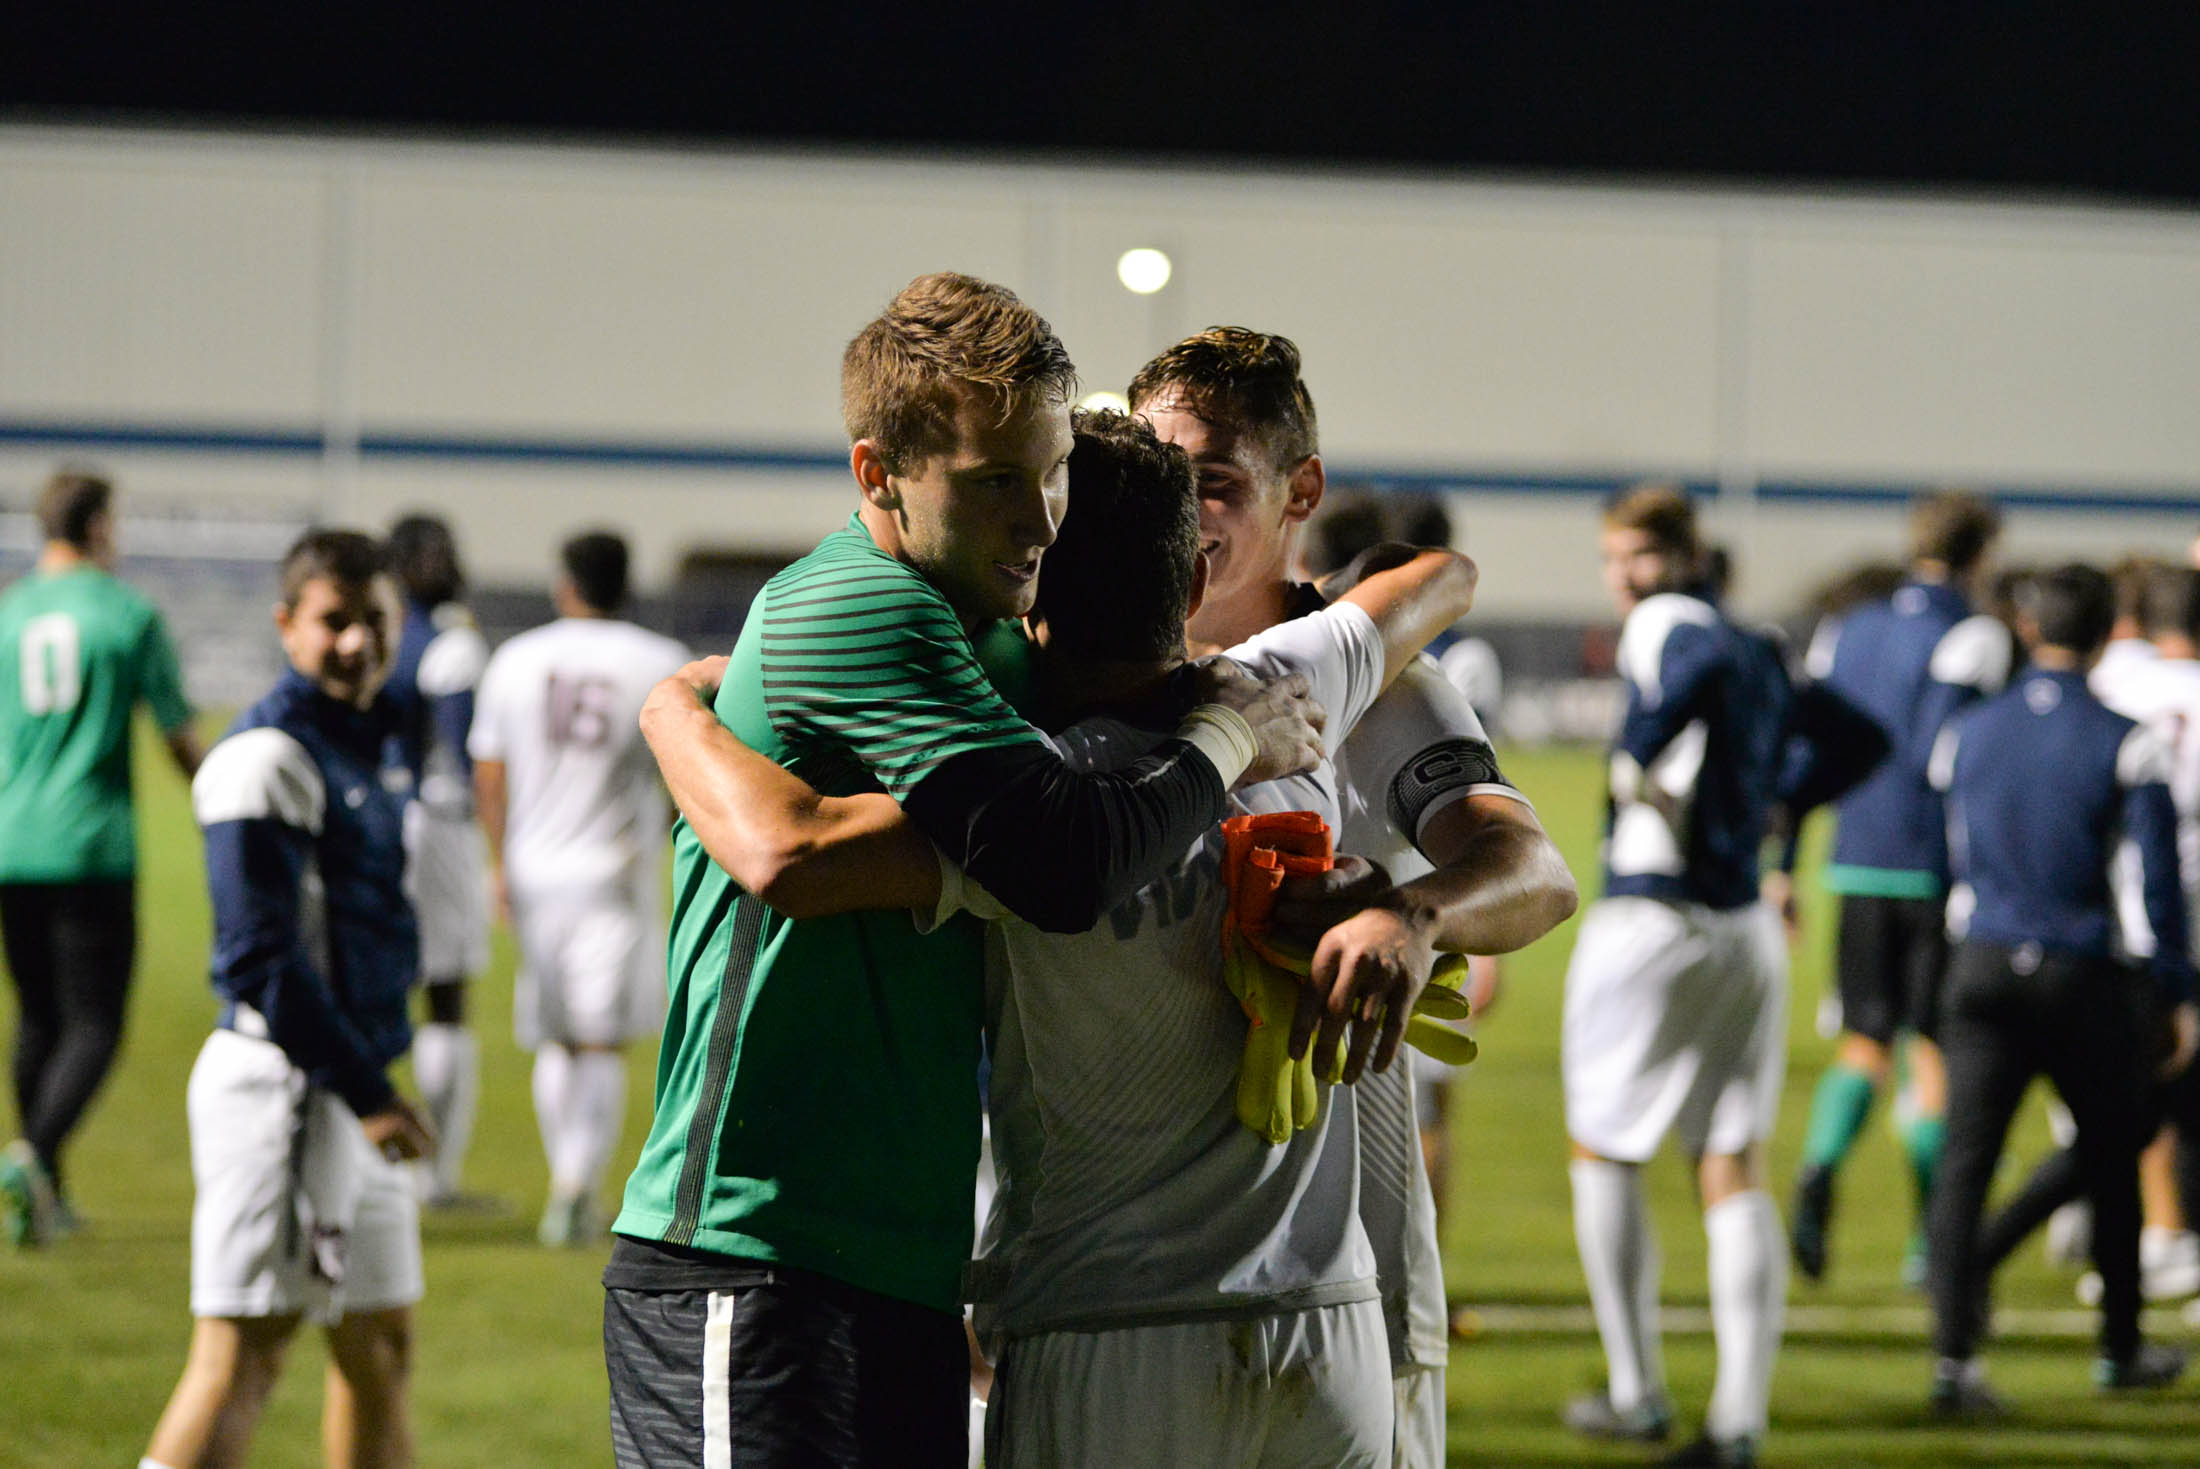 (from left to right) Goalkeeper Scott Levene, defender Dylan Greenberg and defender-captain Jake Newinski hug following the Huskies 1-0 overtime victory over Boston College on Tuesday, Oct. 18, 2016 at Morrone Stadium. Greenberg scored the game winning goal for the Huskies. (Amar Batra/The Daily campus)